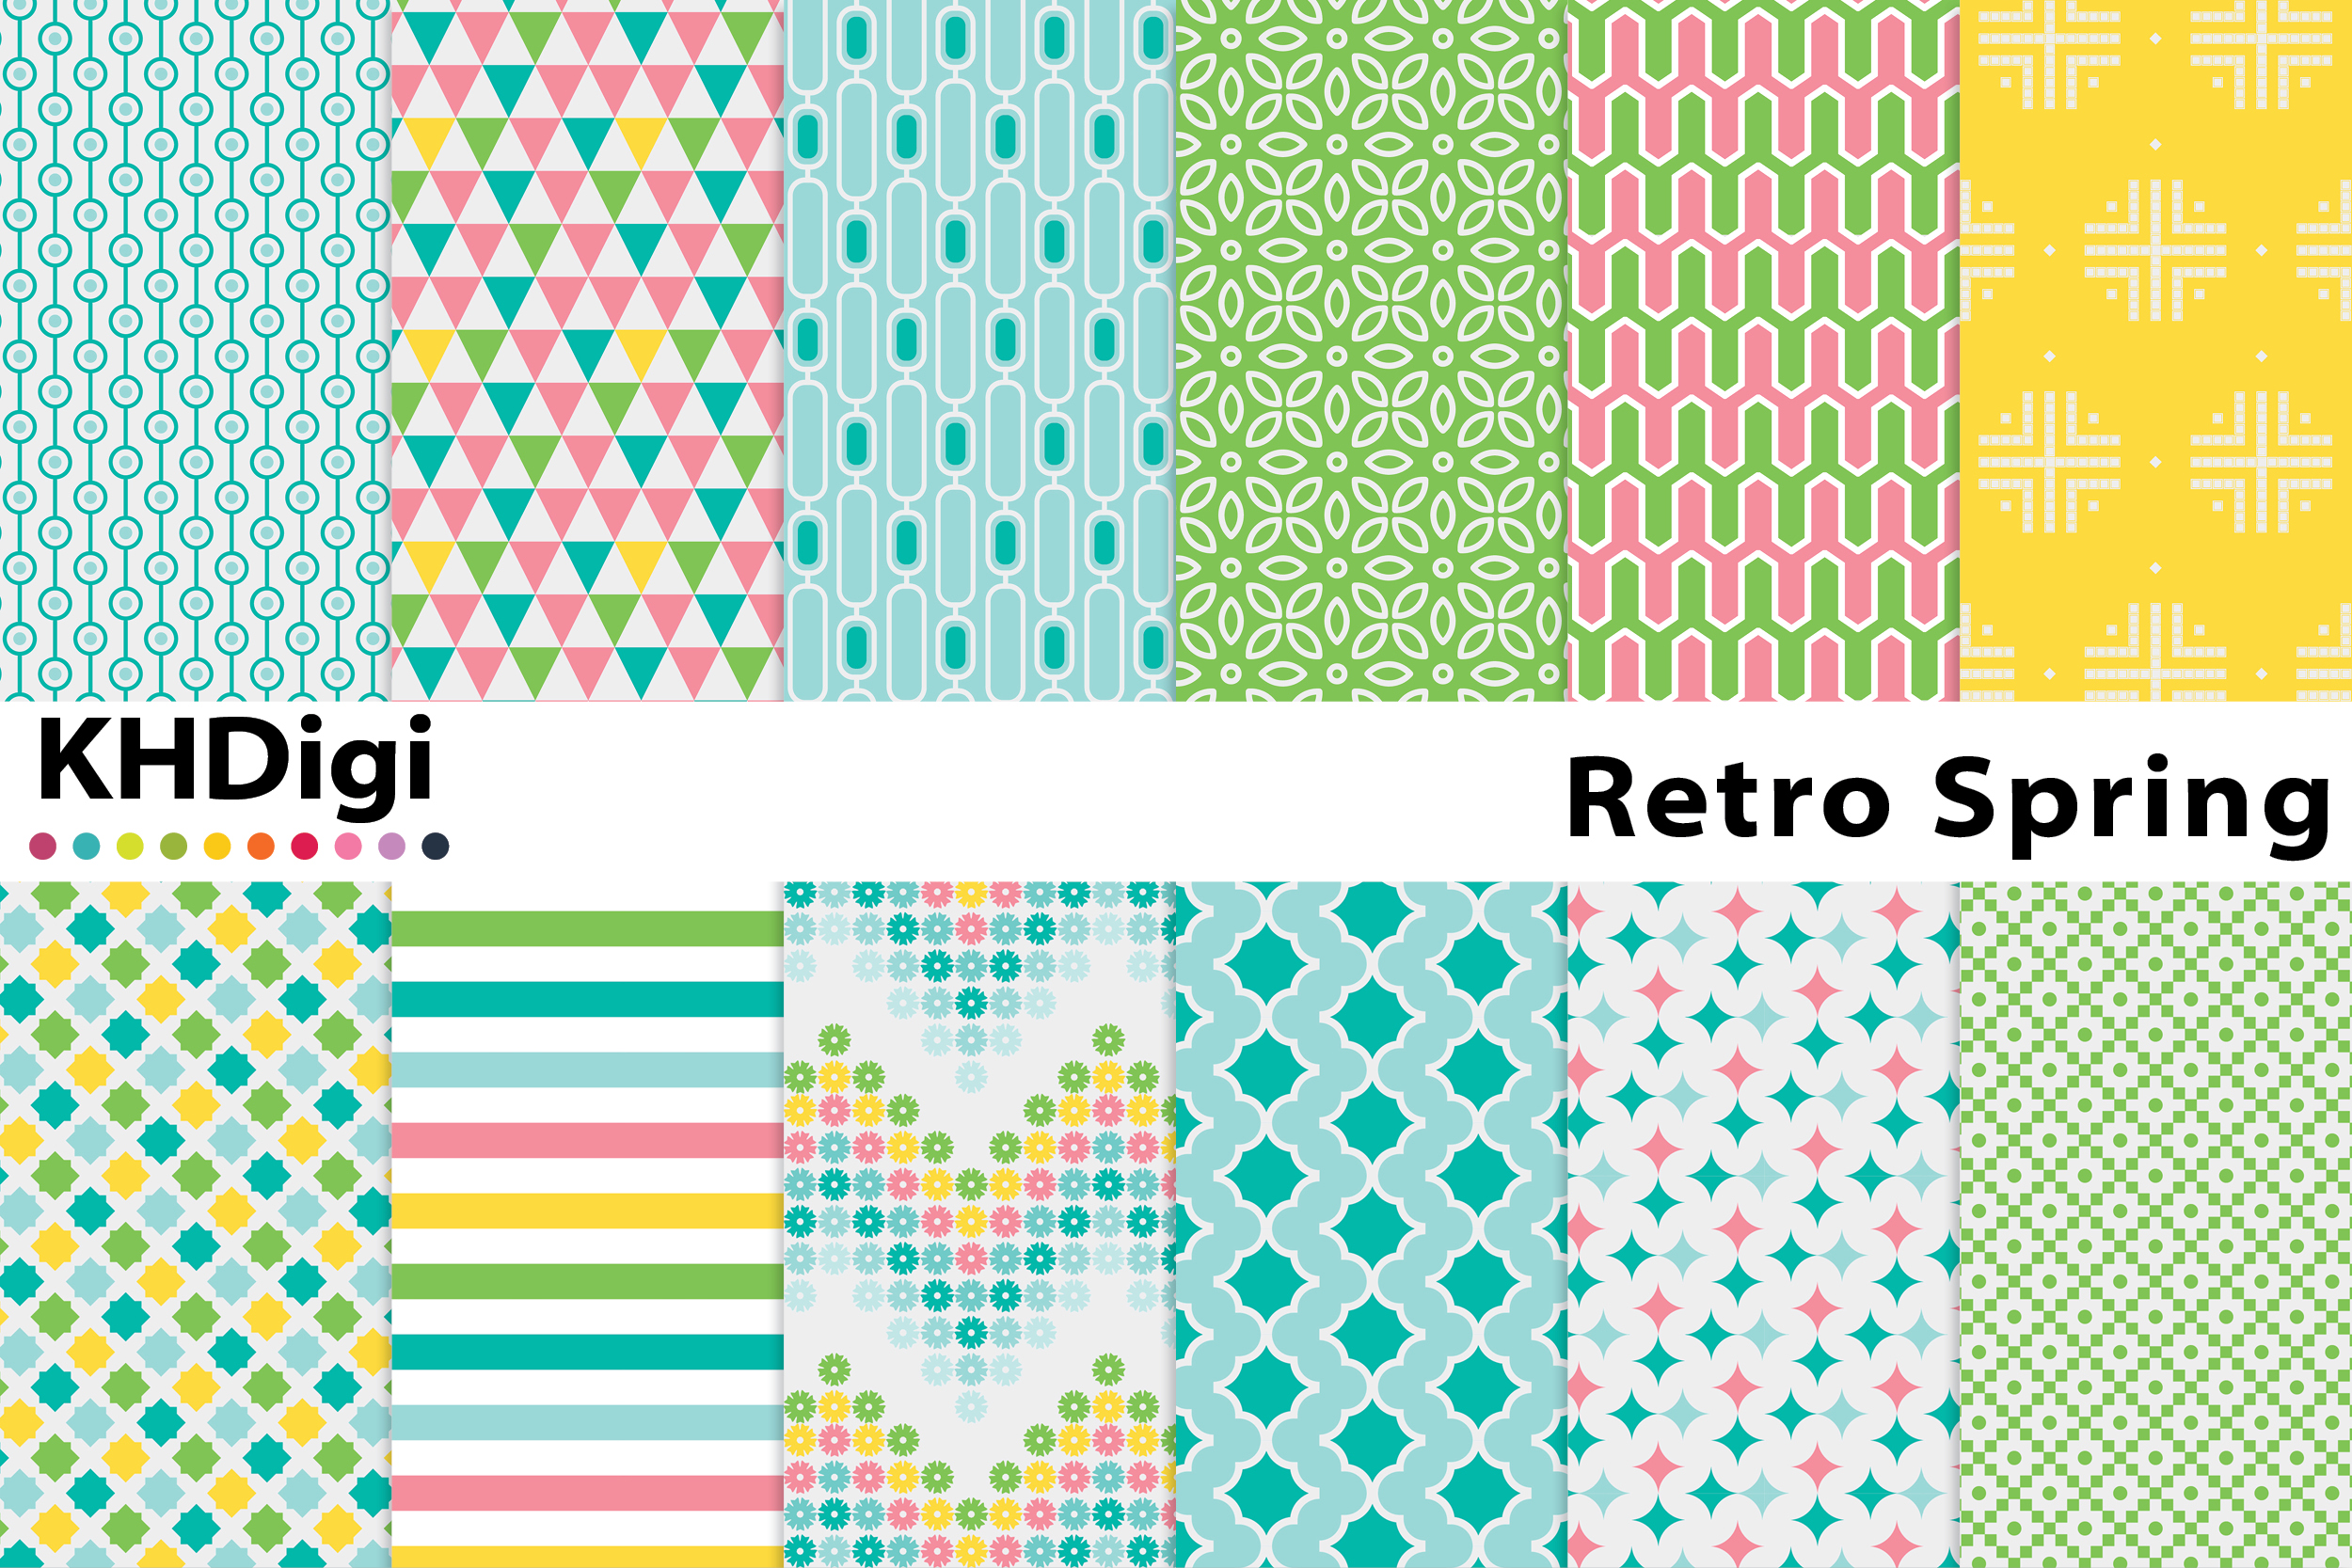 Download Free Retro Spring Digital Paper Graphic By Khdigi Creative Fabrica for Cricut Explore, Silhouette and other cutting machines.